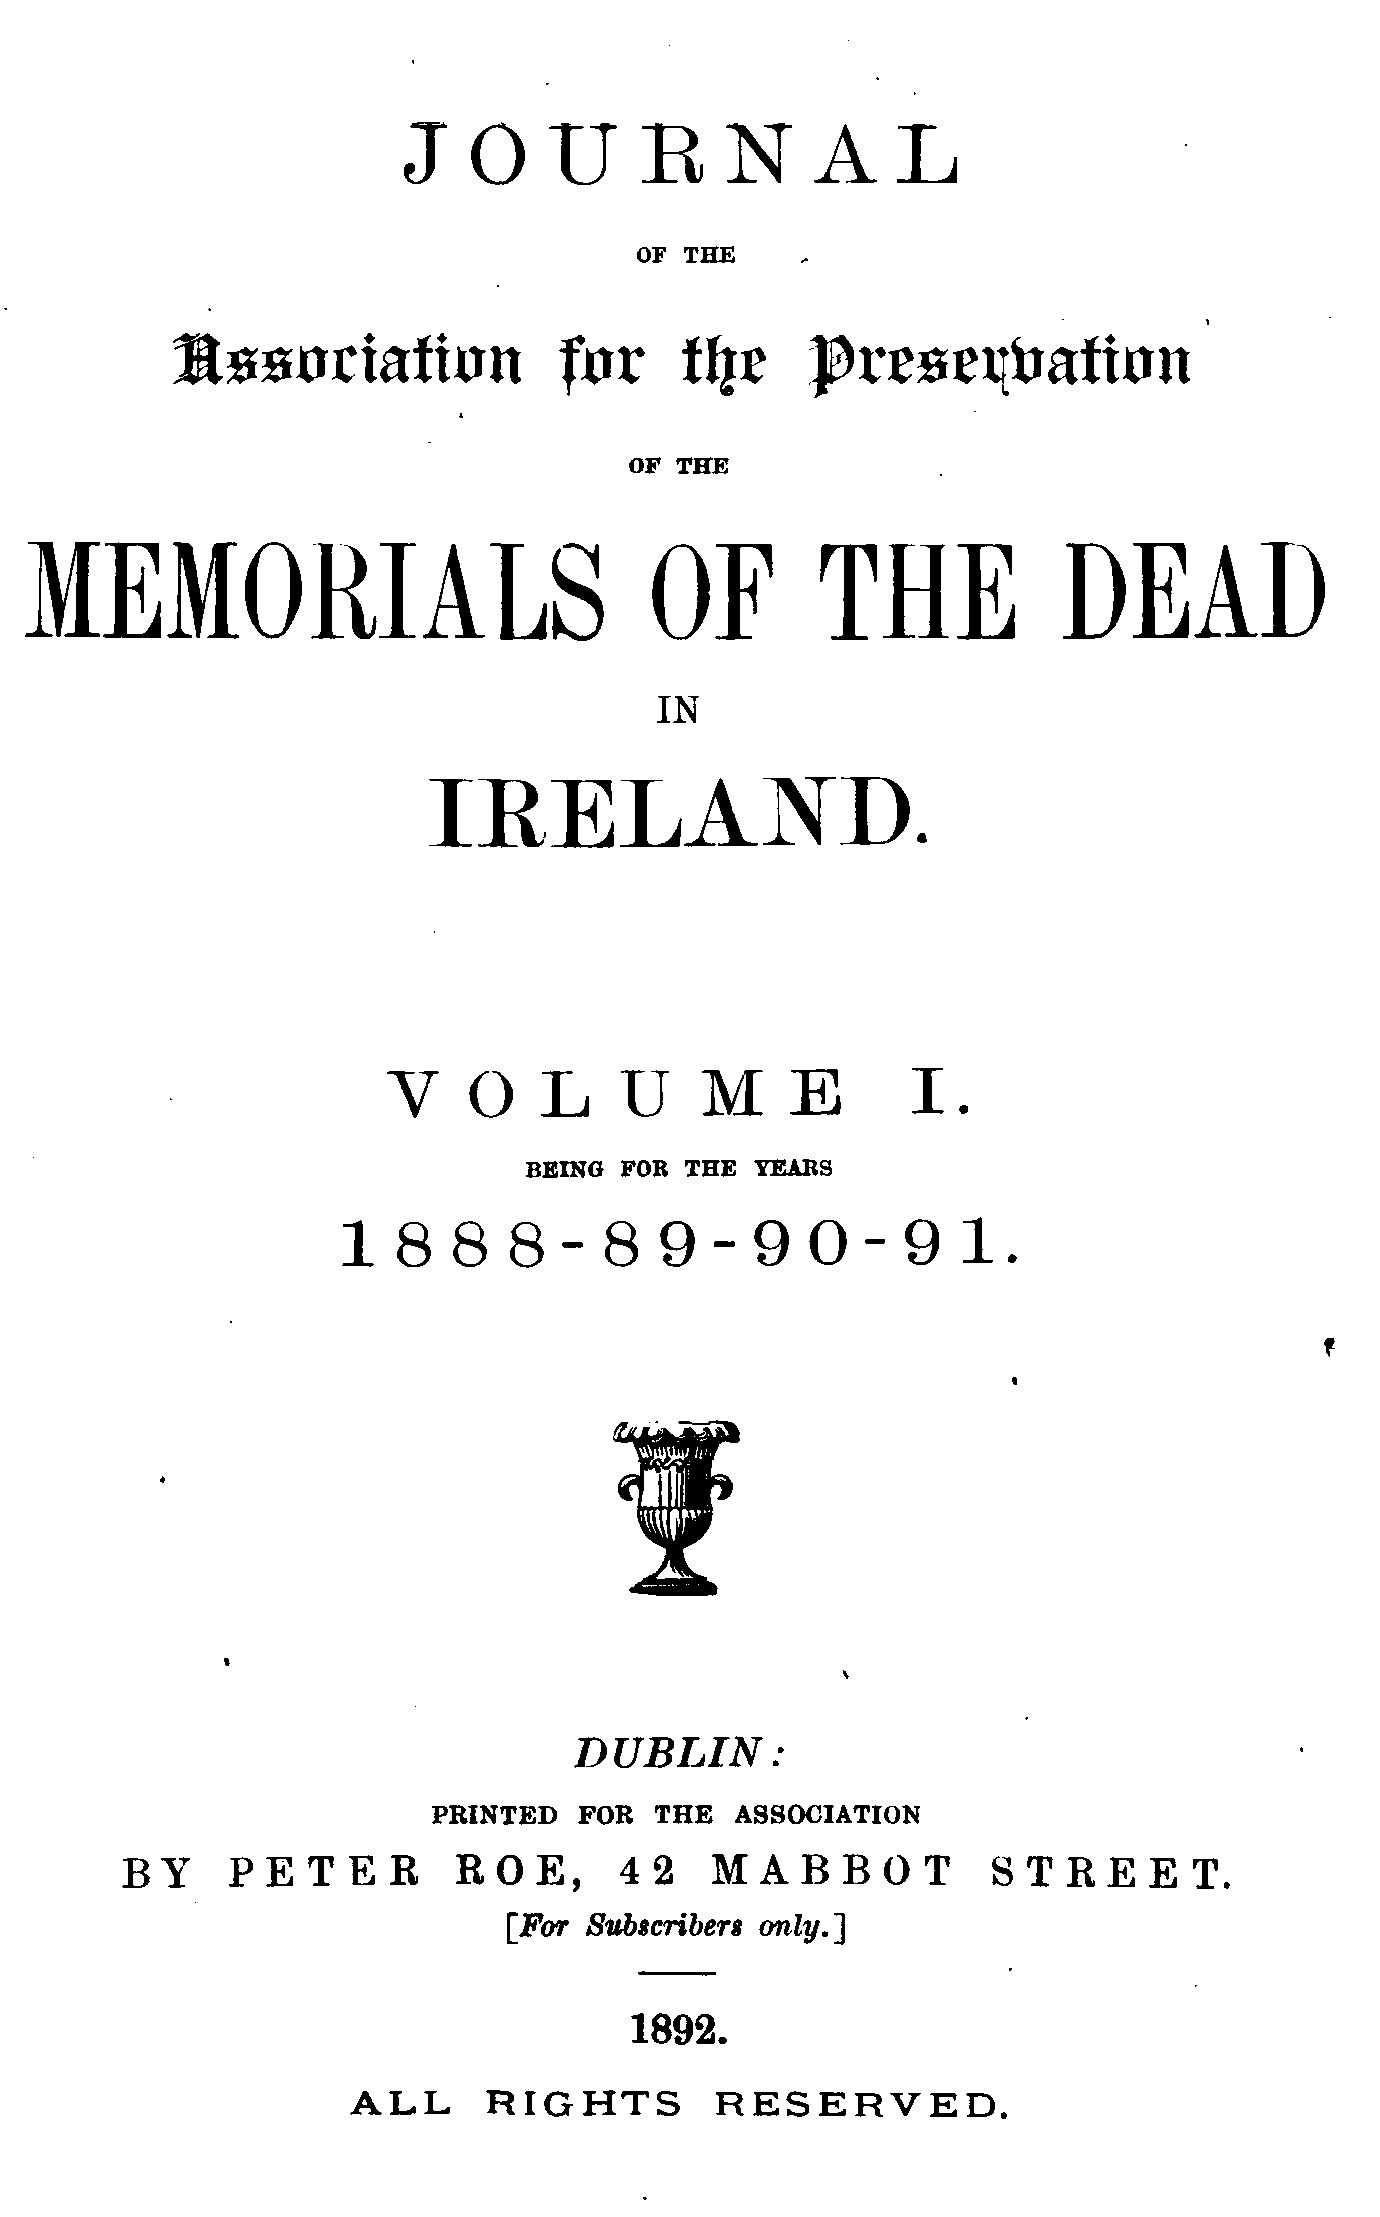 photo of Journal of the Association for the Preservation of the Memorials of the Dead in Ireland. Volume I 1888-1891, 1892